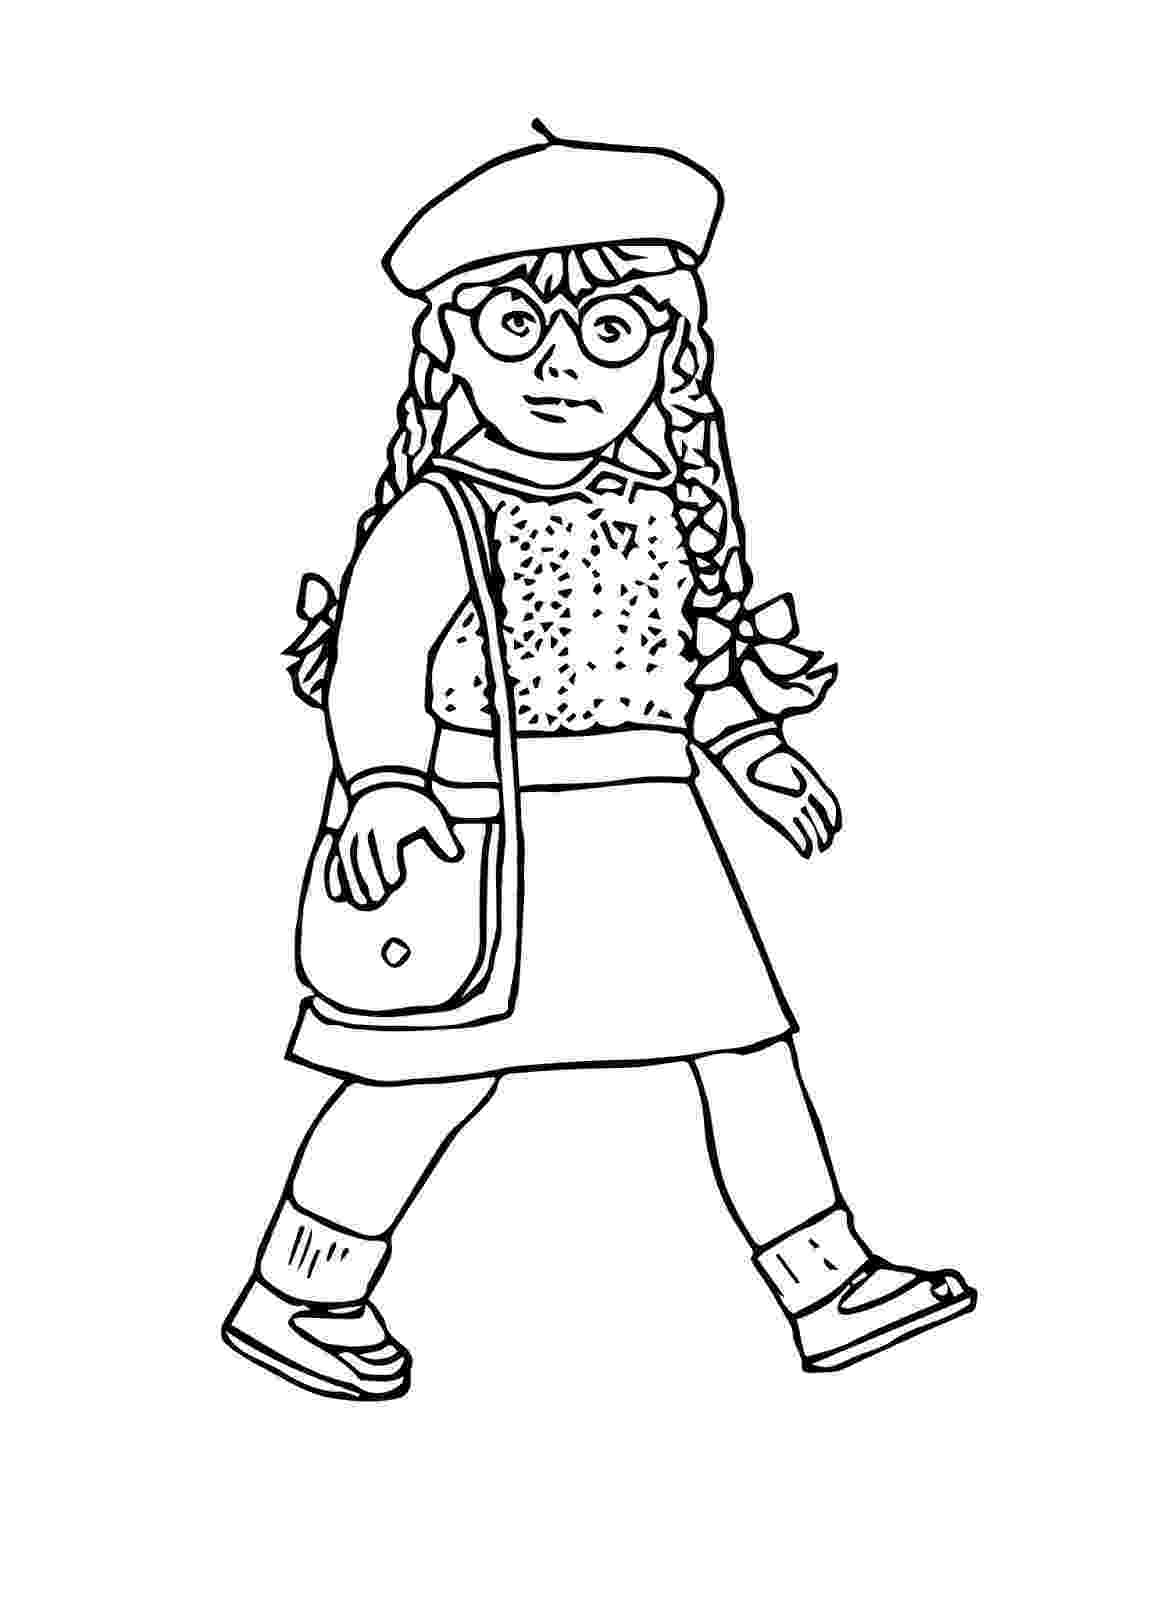 american girl doll pictures american girl coloring pages best coloring pages for kids pictures girl american doll